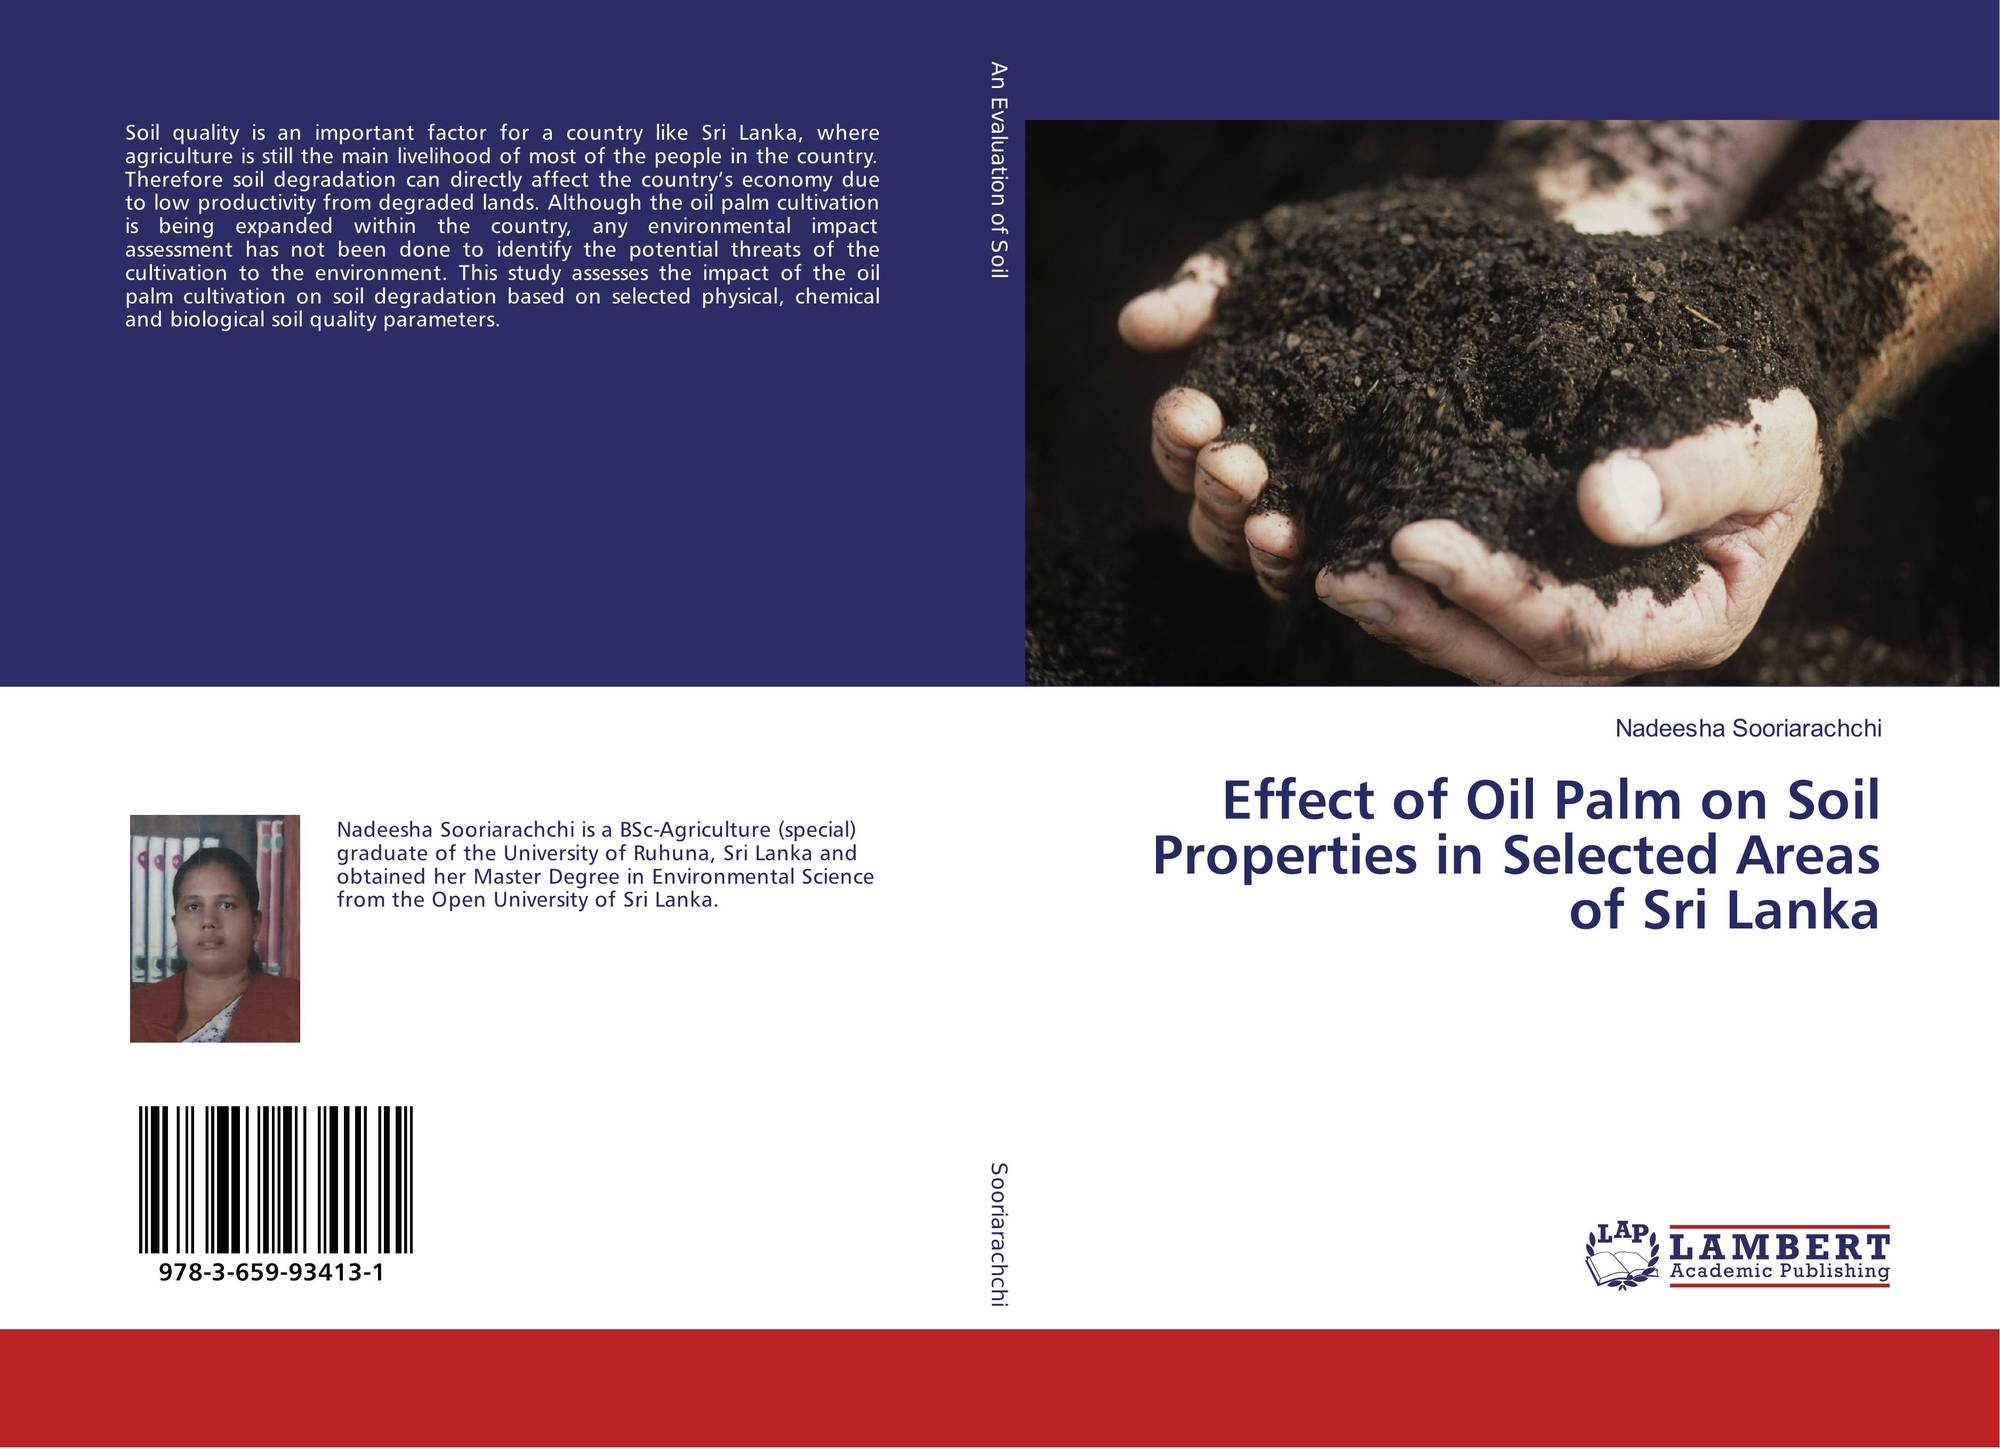 oil palm physiology essay Study guide for exam 2 human anatomy & physiology an overproduction of oil due to enlarged we will write a custom essay sample on any topic specifically for.